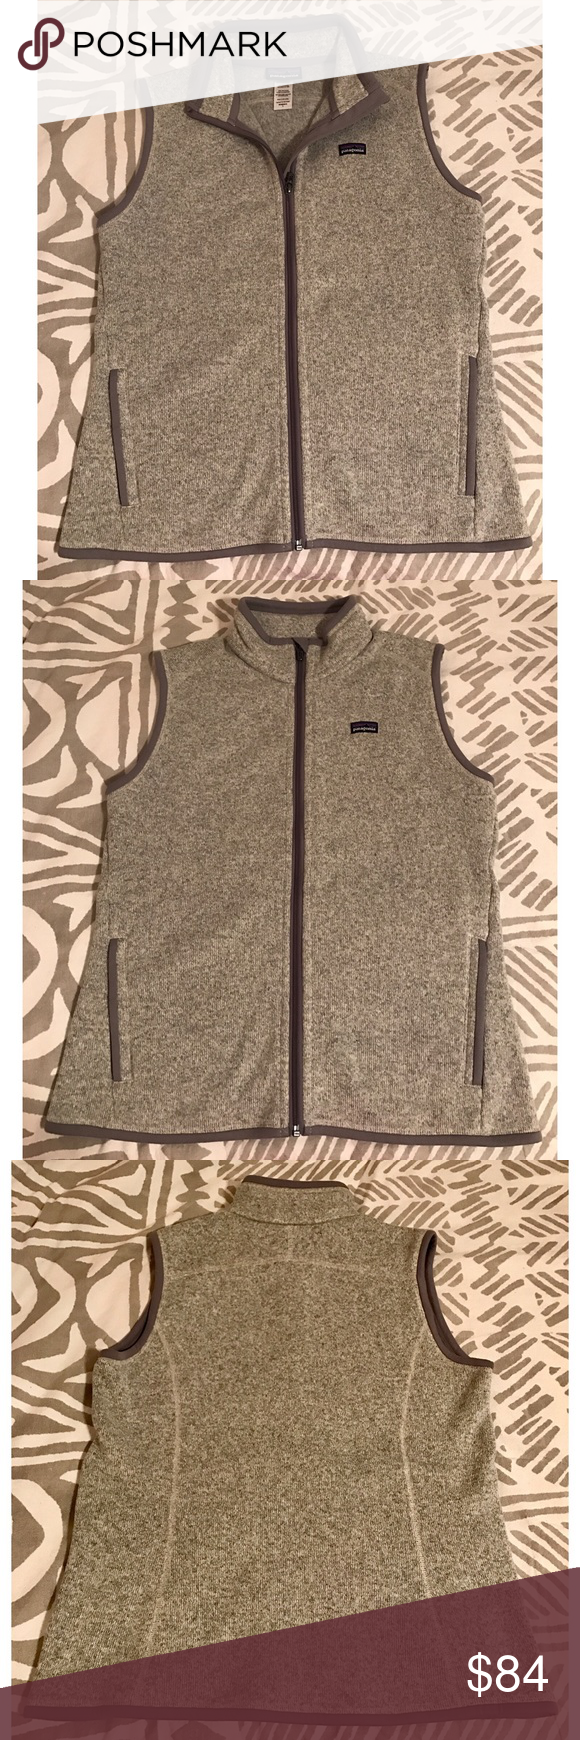 Patagonia Better Sweater Vest Women's size large Patagonia Better Sweater Grey vest. PERFECT CONDITION. Literally no signs of wear. Worn once. Purchased in 2015. Perfect addition to any closet for bundling up or layering in style. No trades please! Patagonia Jackets & Coats Vests